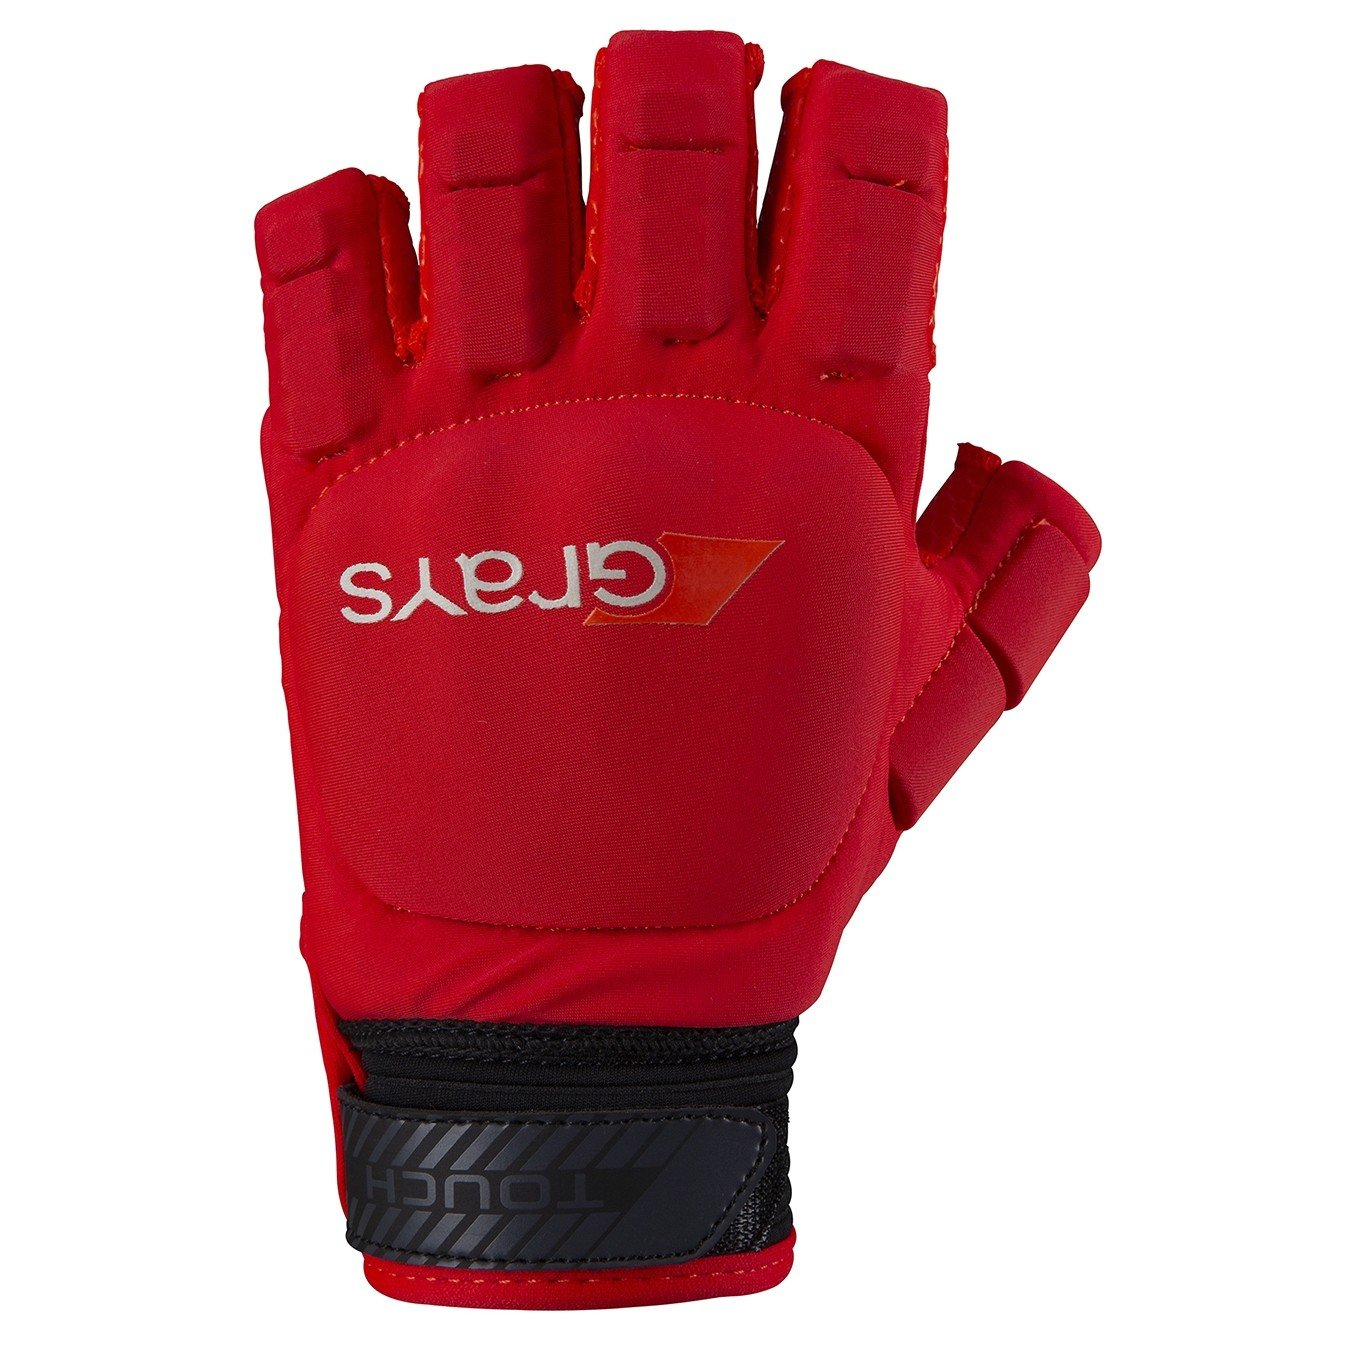 2021/22 Grays Touch Hockey Glove - Fluo Red